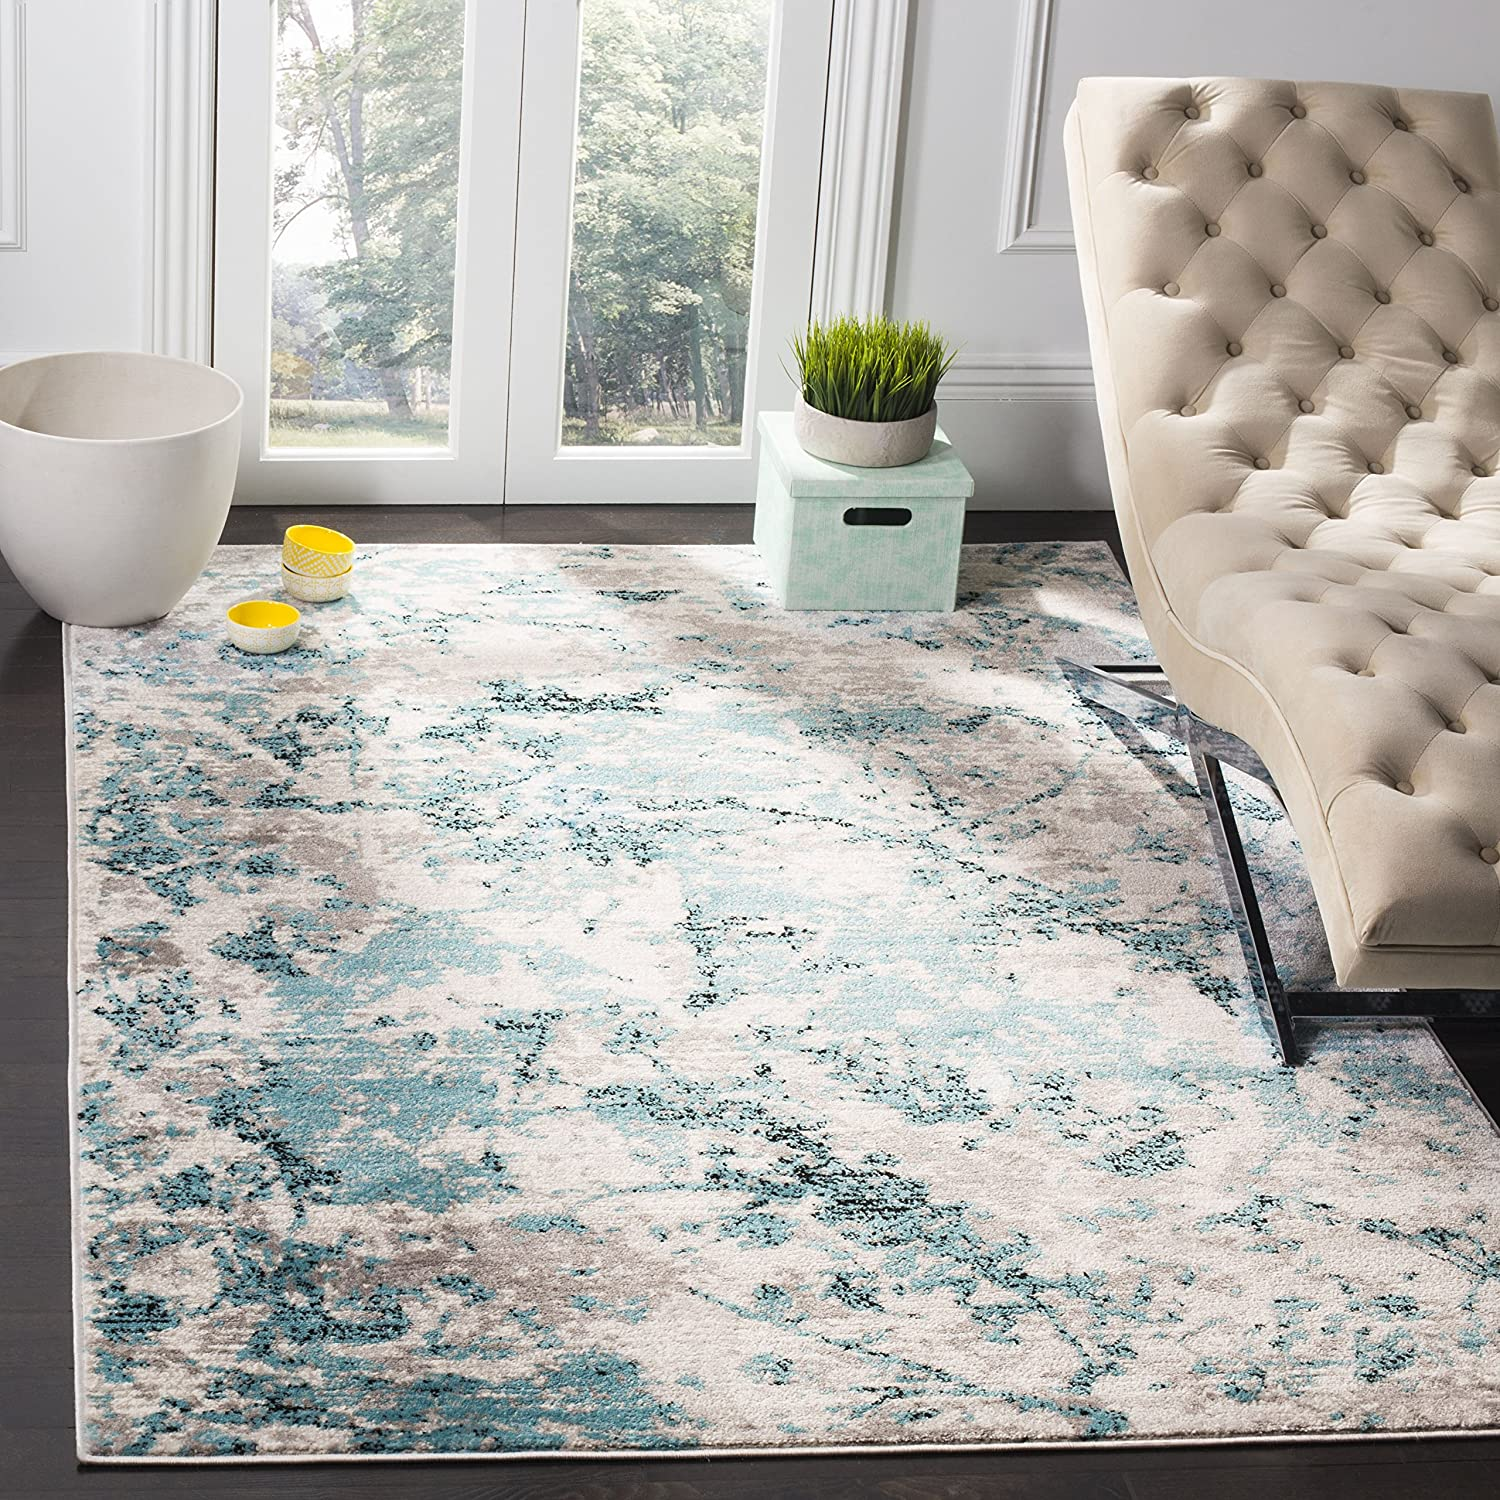 Safavieh Skyler Collection SKY186M Cash special price Max 76% OFF Non-Shedding Modern Abstract